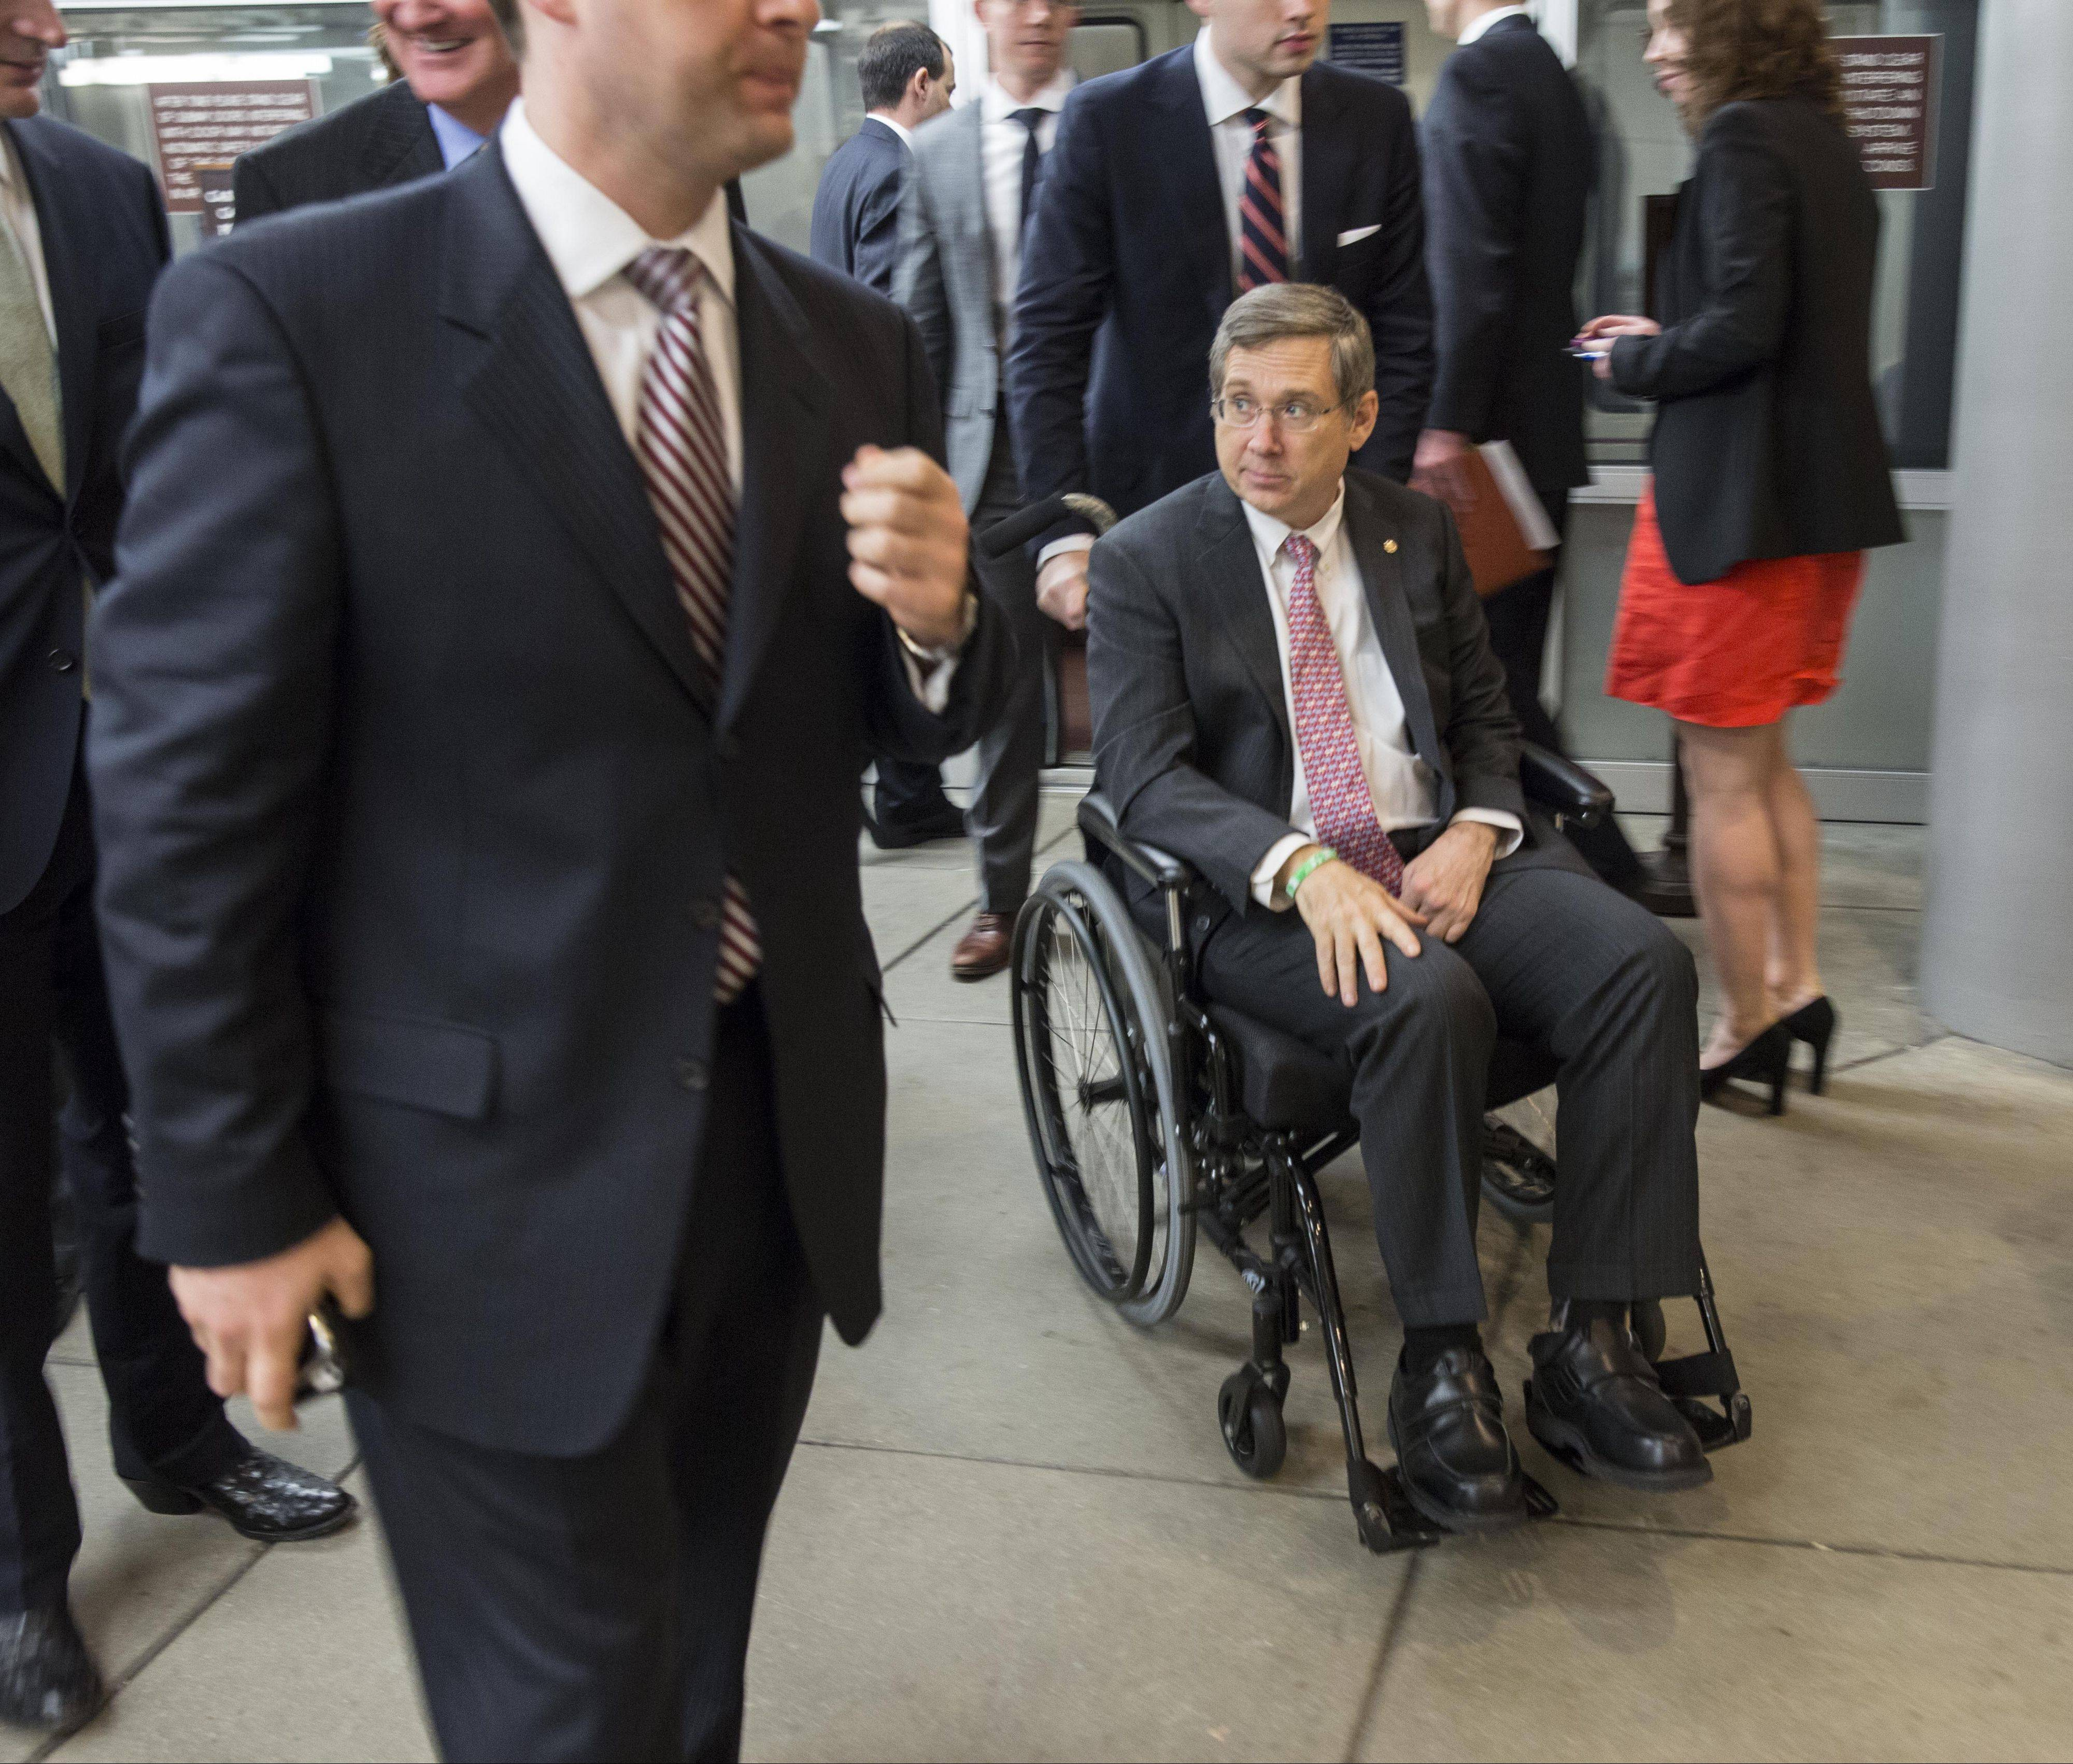 U.S. Sen. Mark Kirk, who travels around the Capitol by wheelchair since his return to Congress after suffering a stroke, heads from his office to the Senate for a vote.